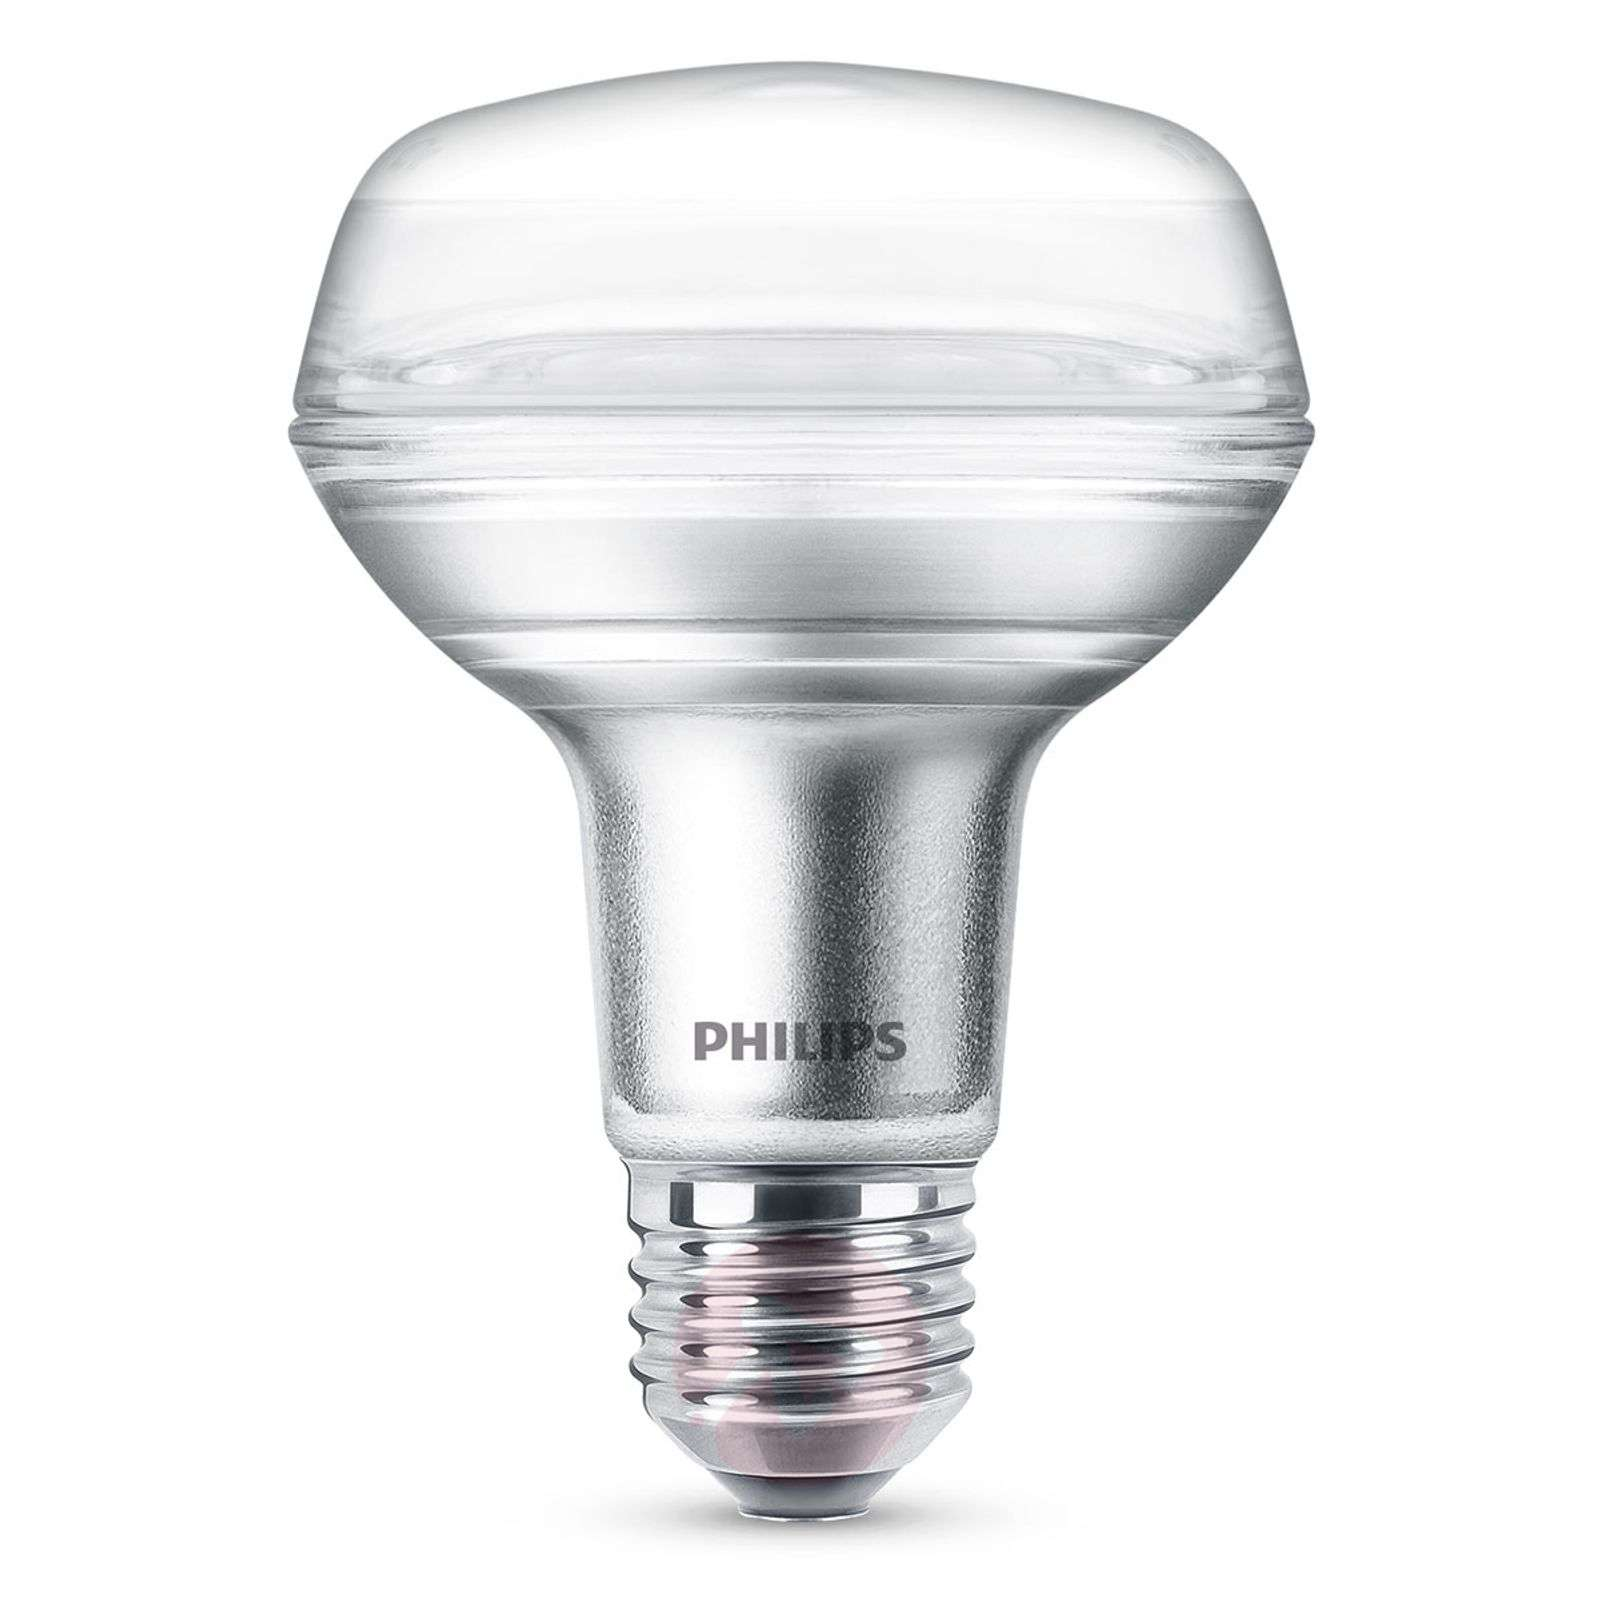 Philips E27 4 W 827 réflecteur LED R80-7530825-01